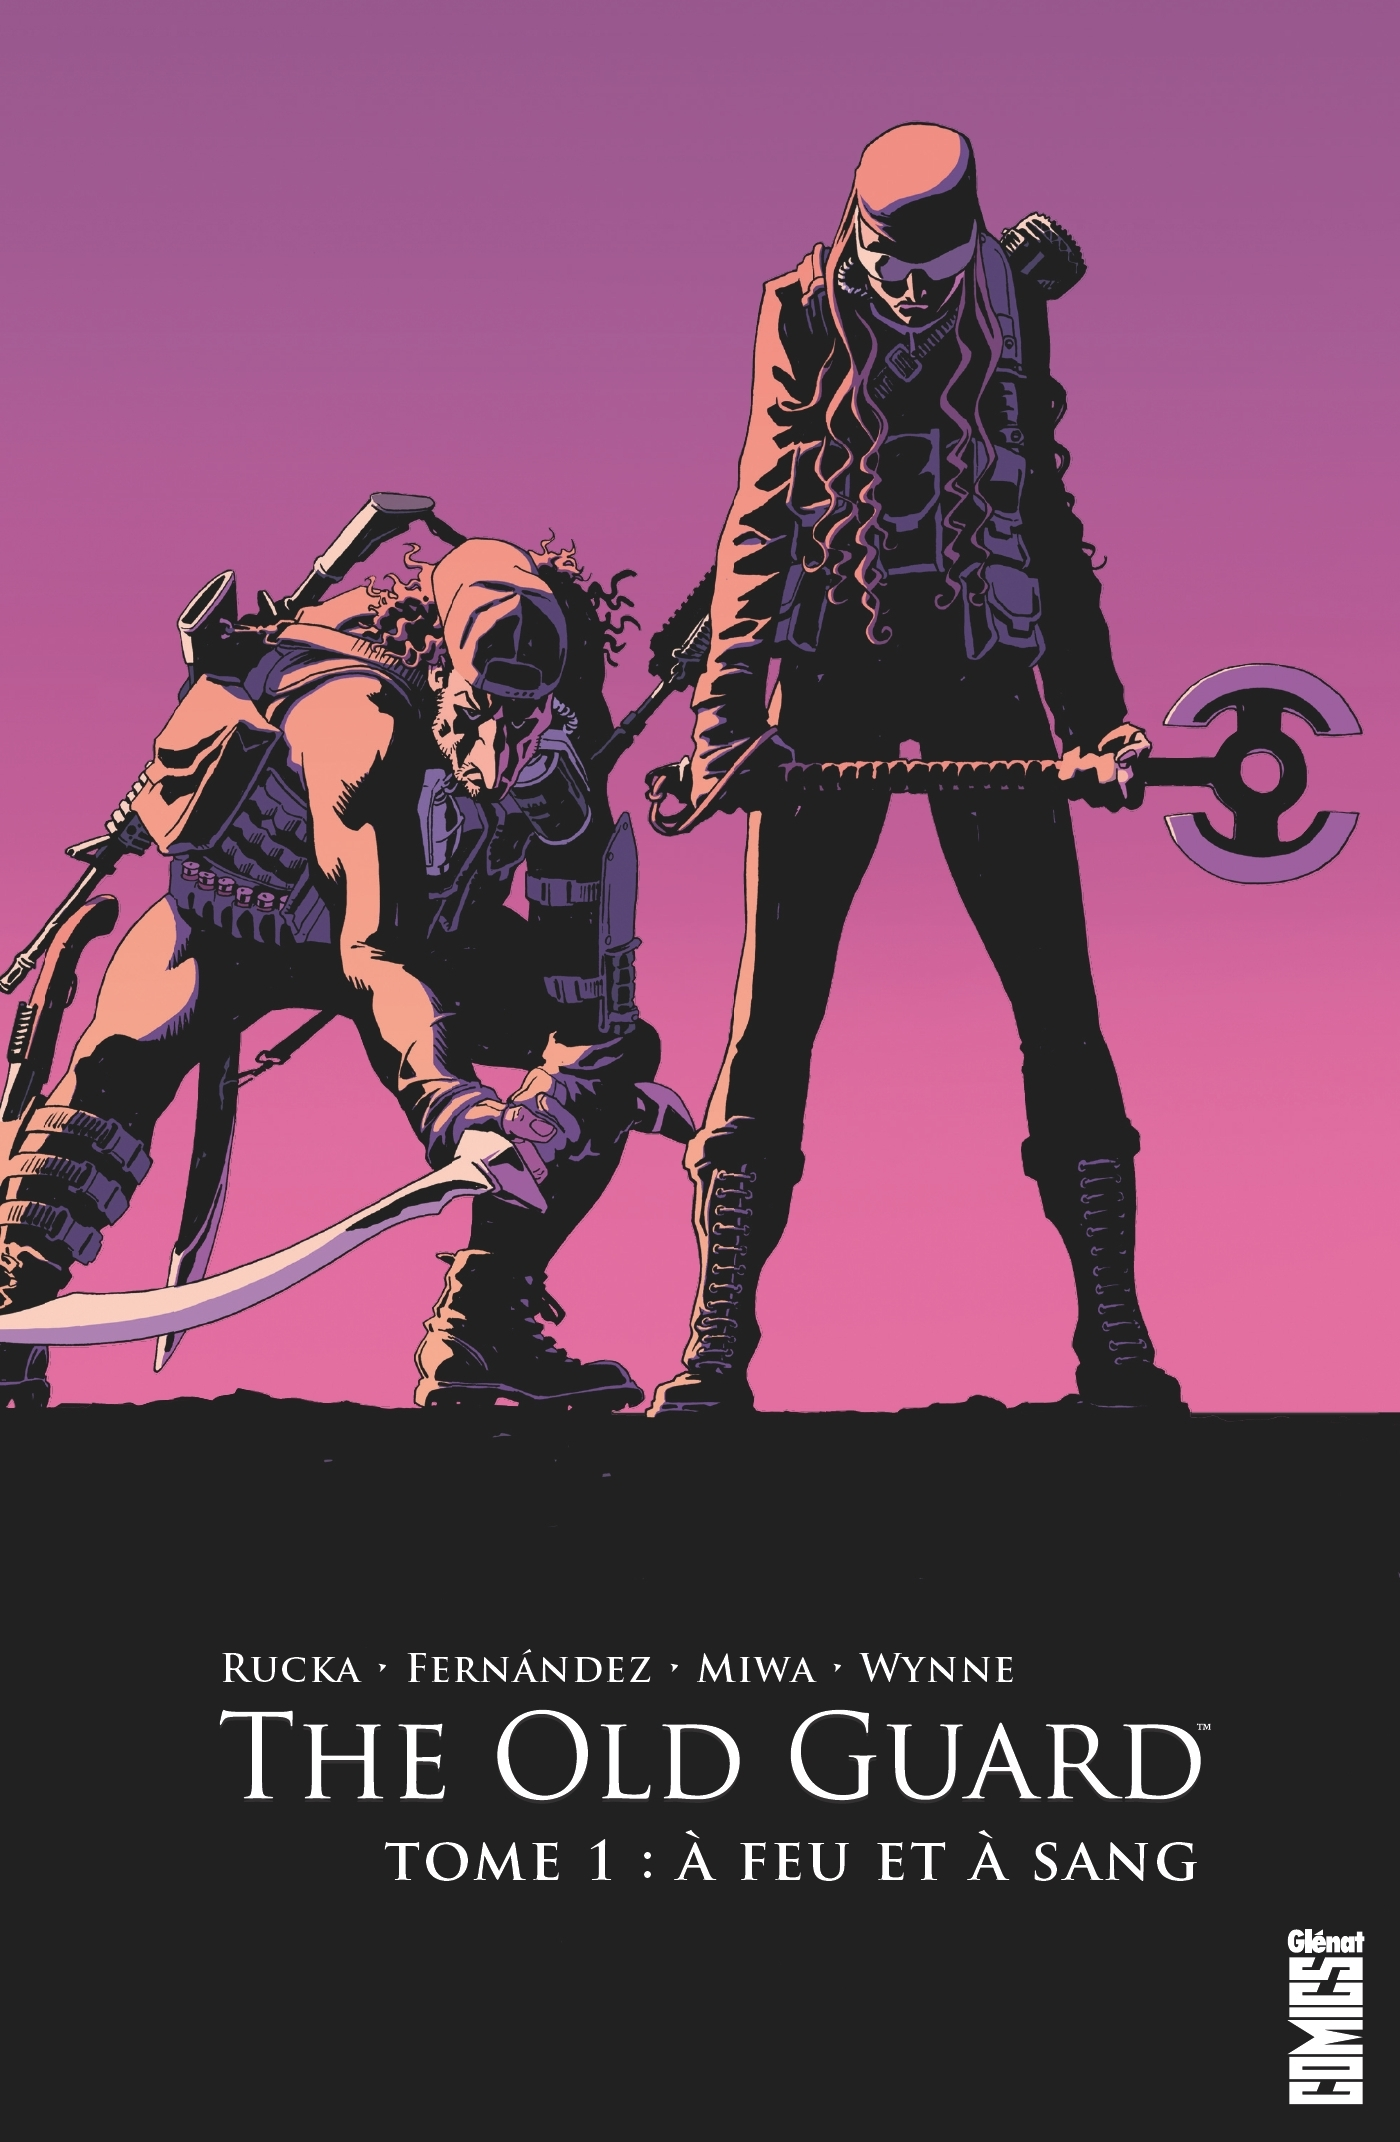 THE OLD GUARD - TOME 01 - A FEU ET A SANG